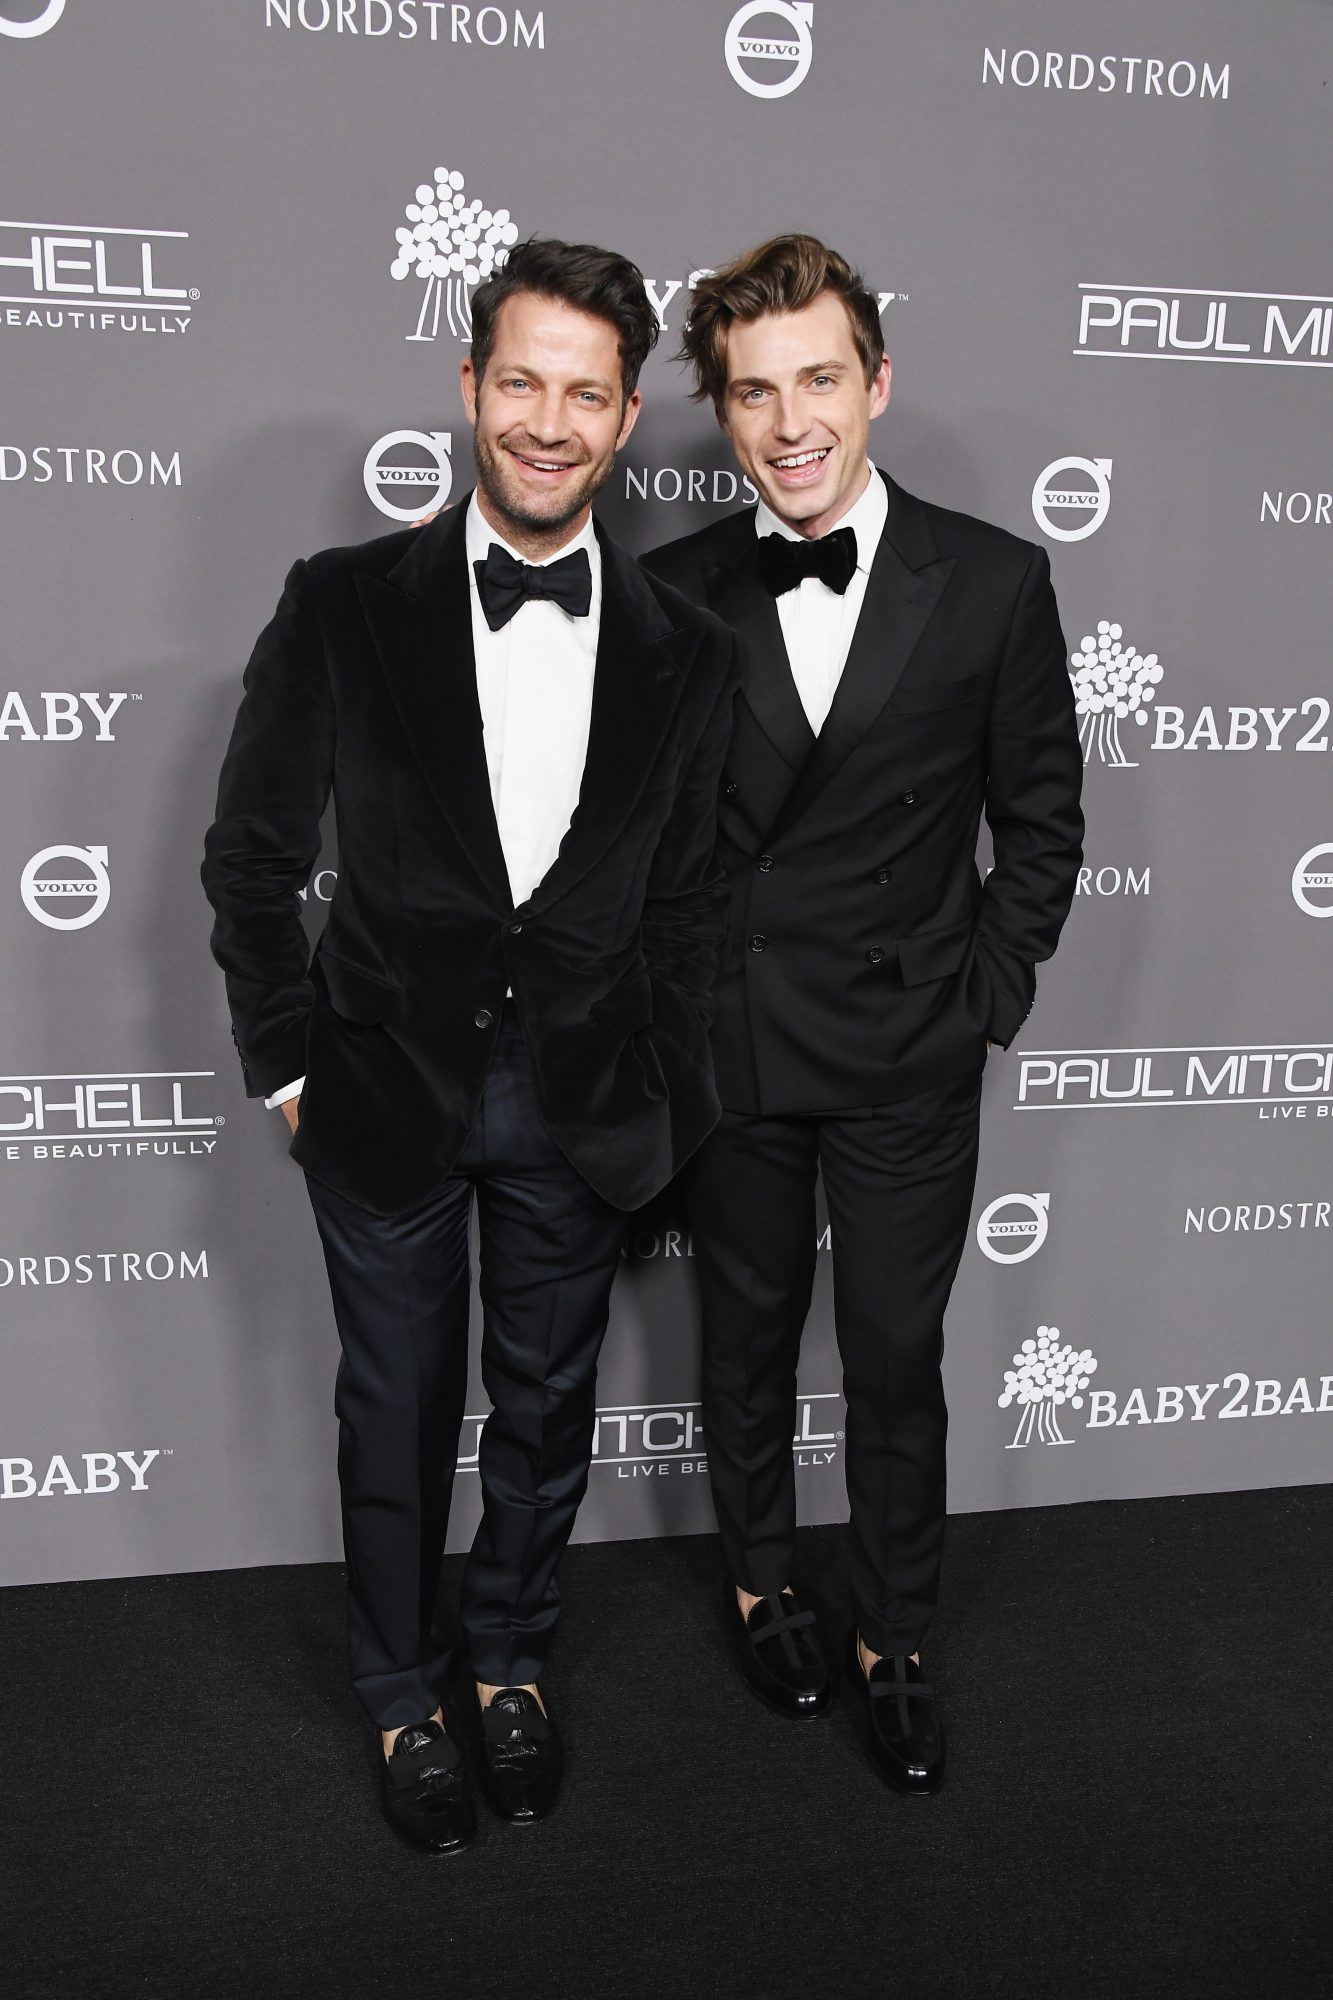 Nate Berkus Loves Reading Almost as Much as He Loves Jeremiah Brent